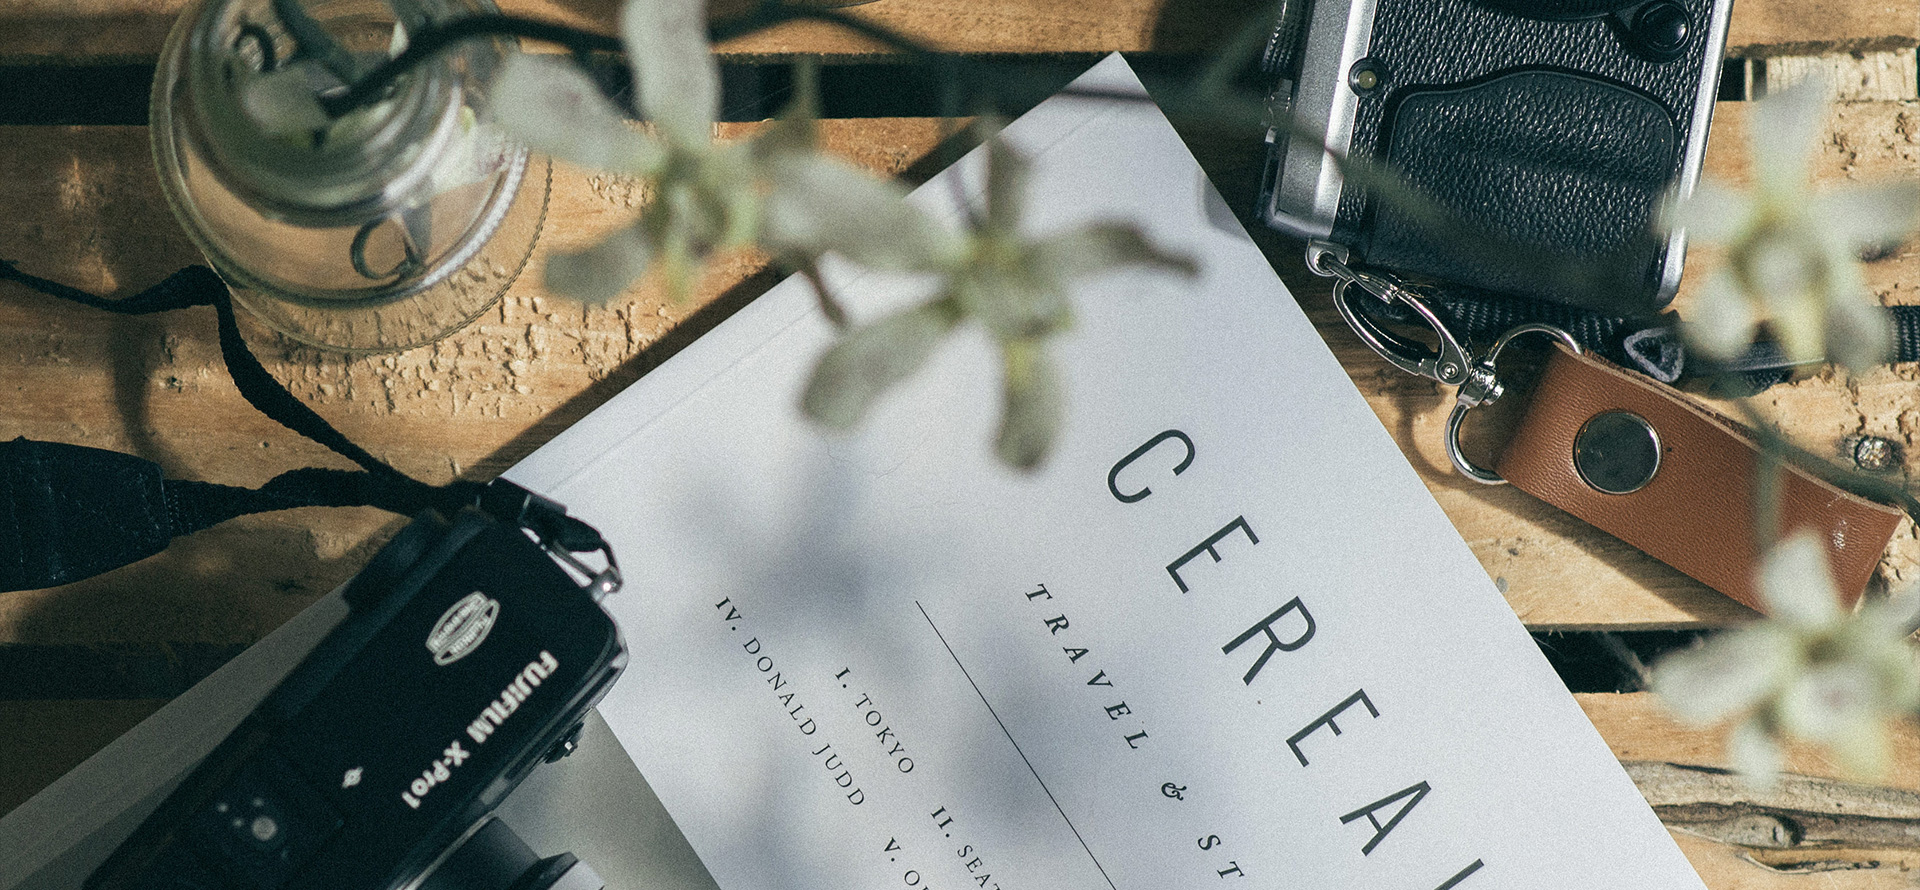 A book on a table